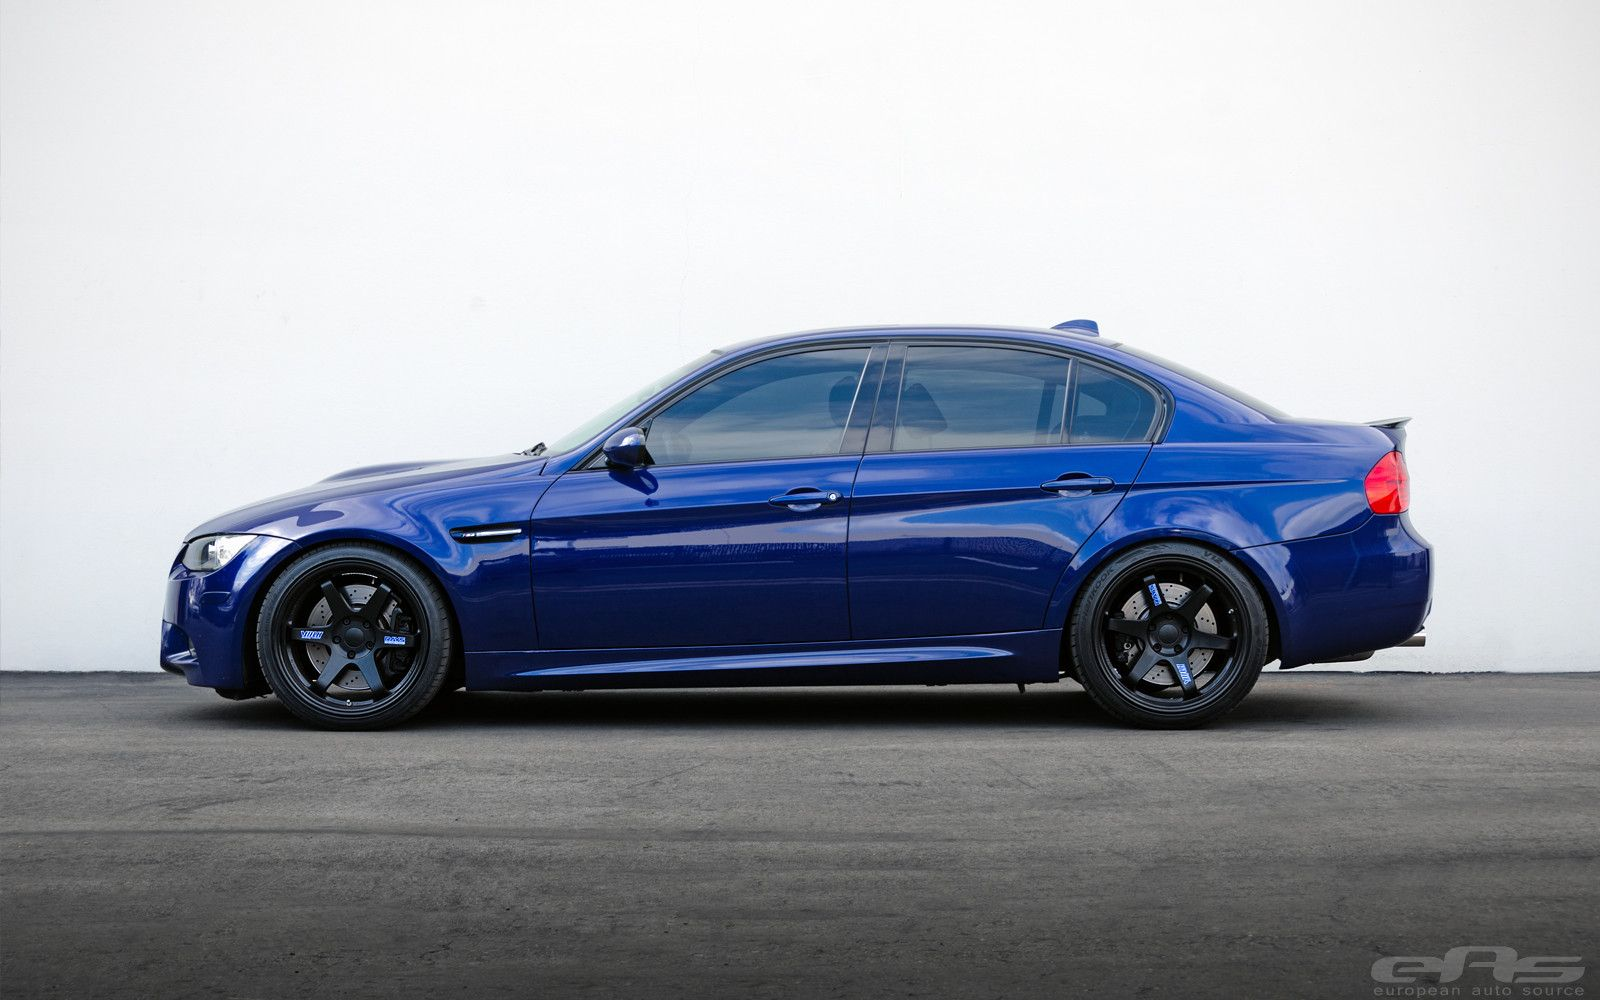 Blue M3 Sedan Makes Me Want Too With Images Dream Cars Bmw